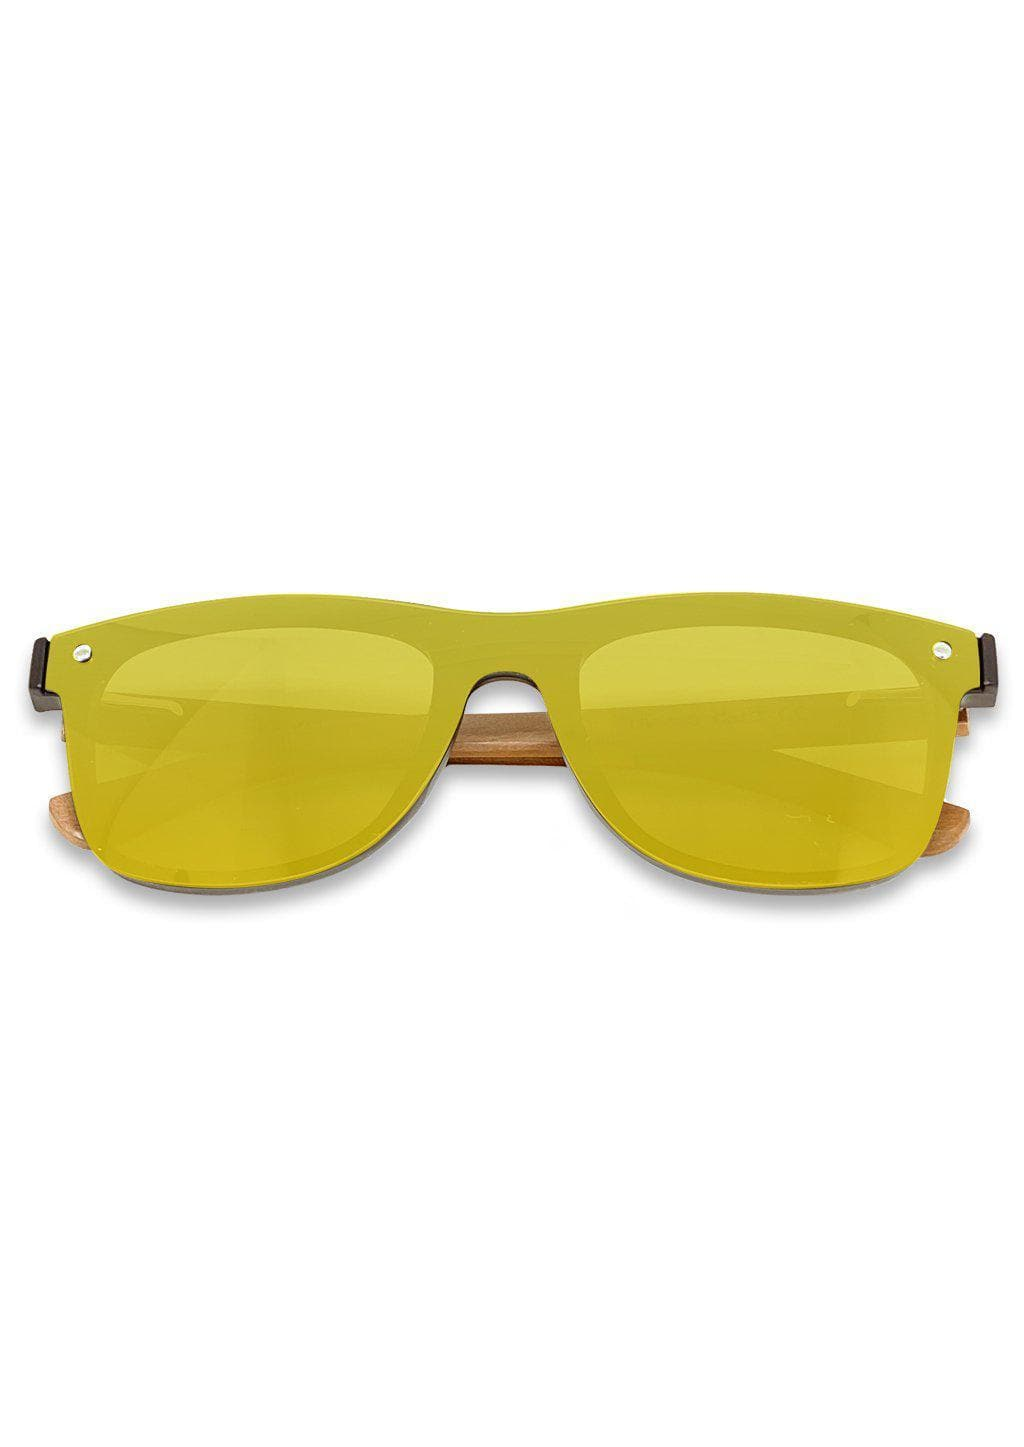 Eyewood tomorrow is our modern cool take on classic models. This is Scorpius with yellow mirror lenses. Nice wooden sunglasses.